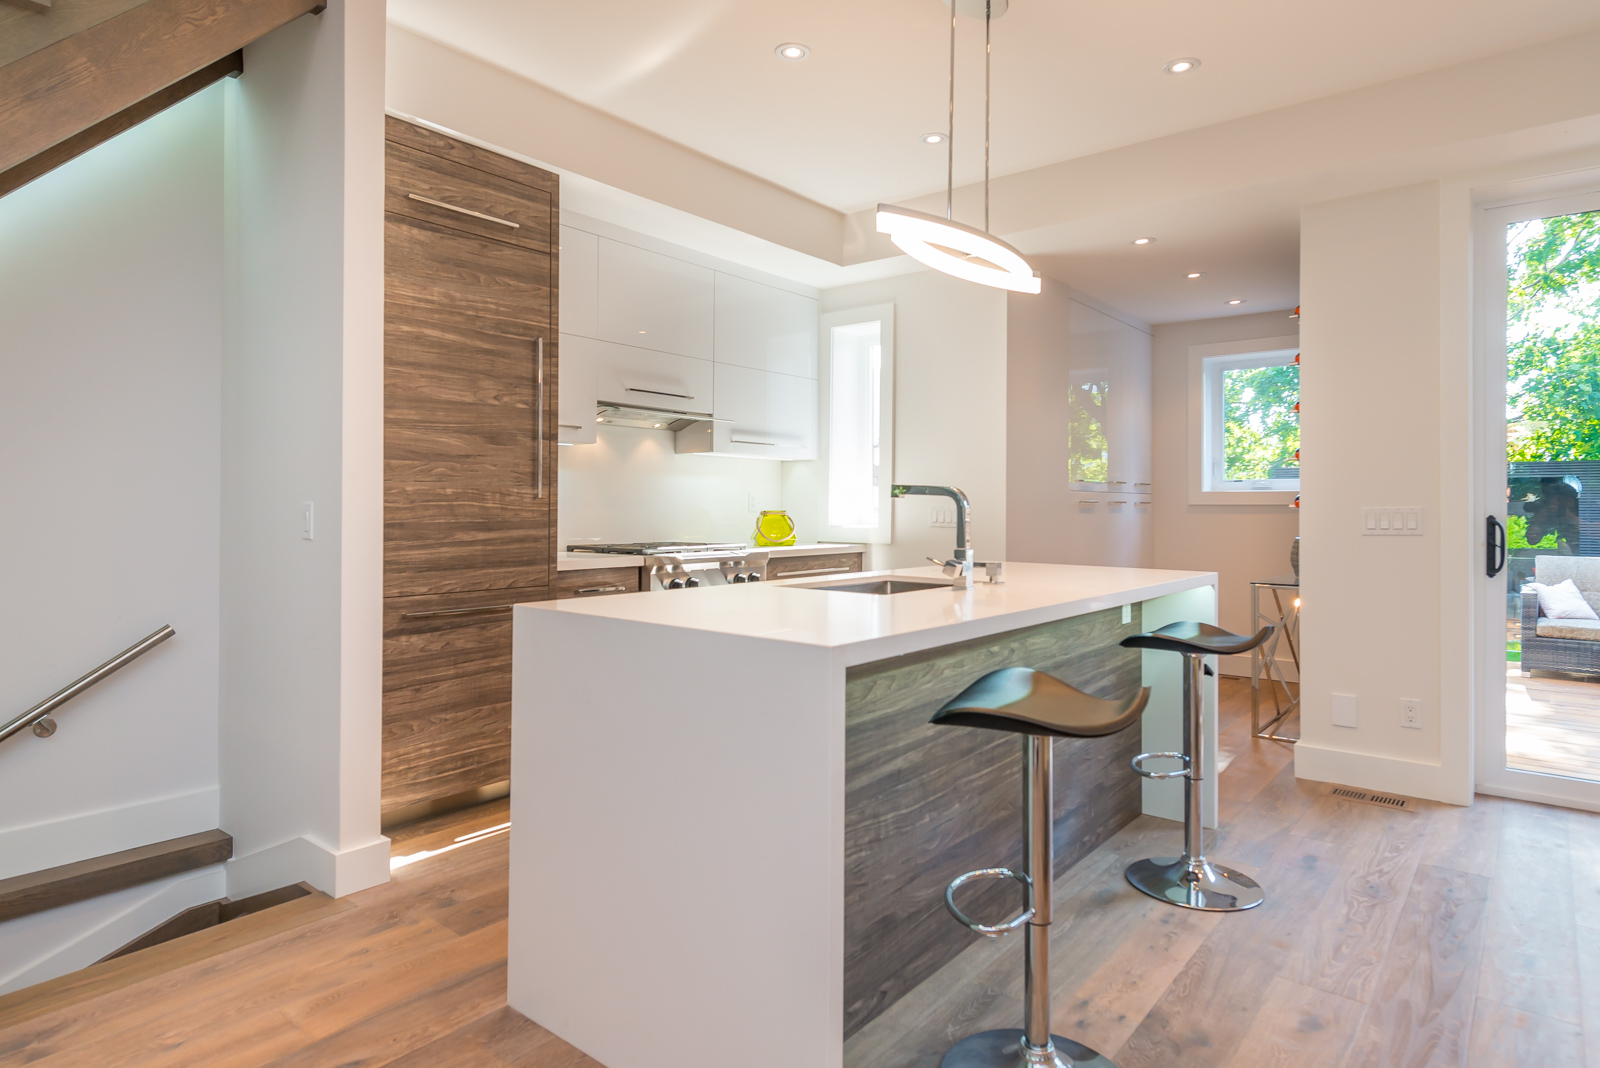 Kitchen – Danforth